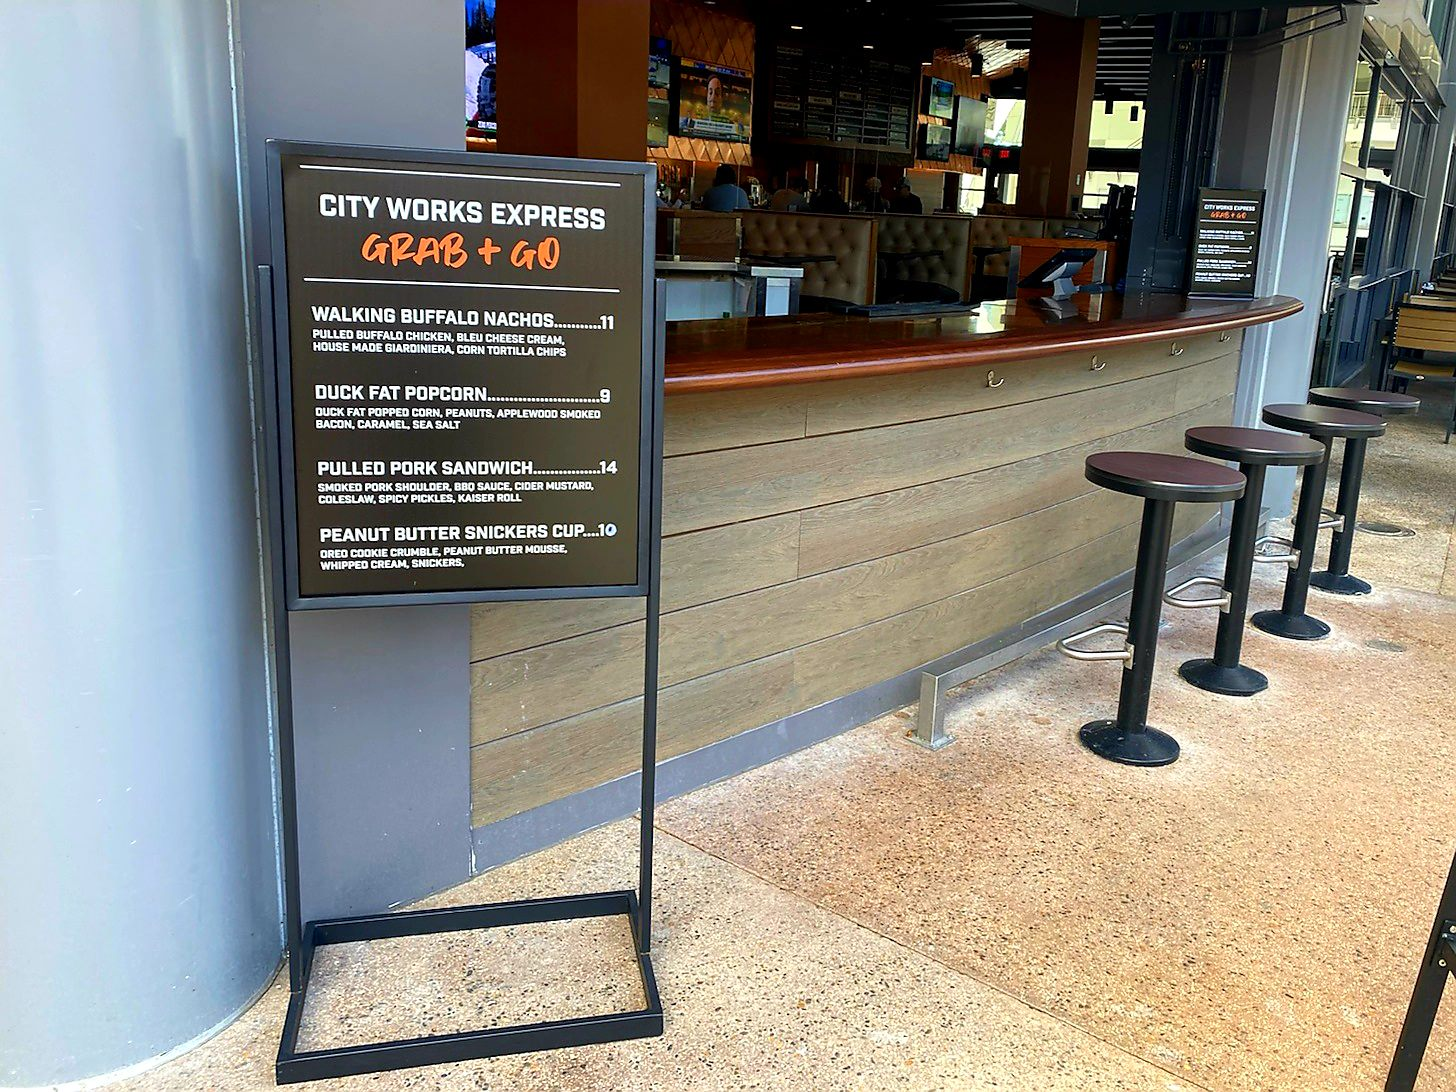 There's a New Express Grab & Go Menu at This Disney Springs Restaurant! - AllEars.Net